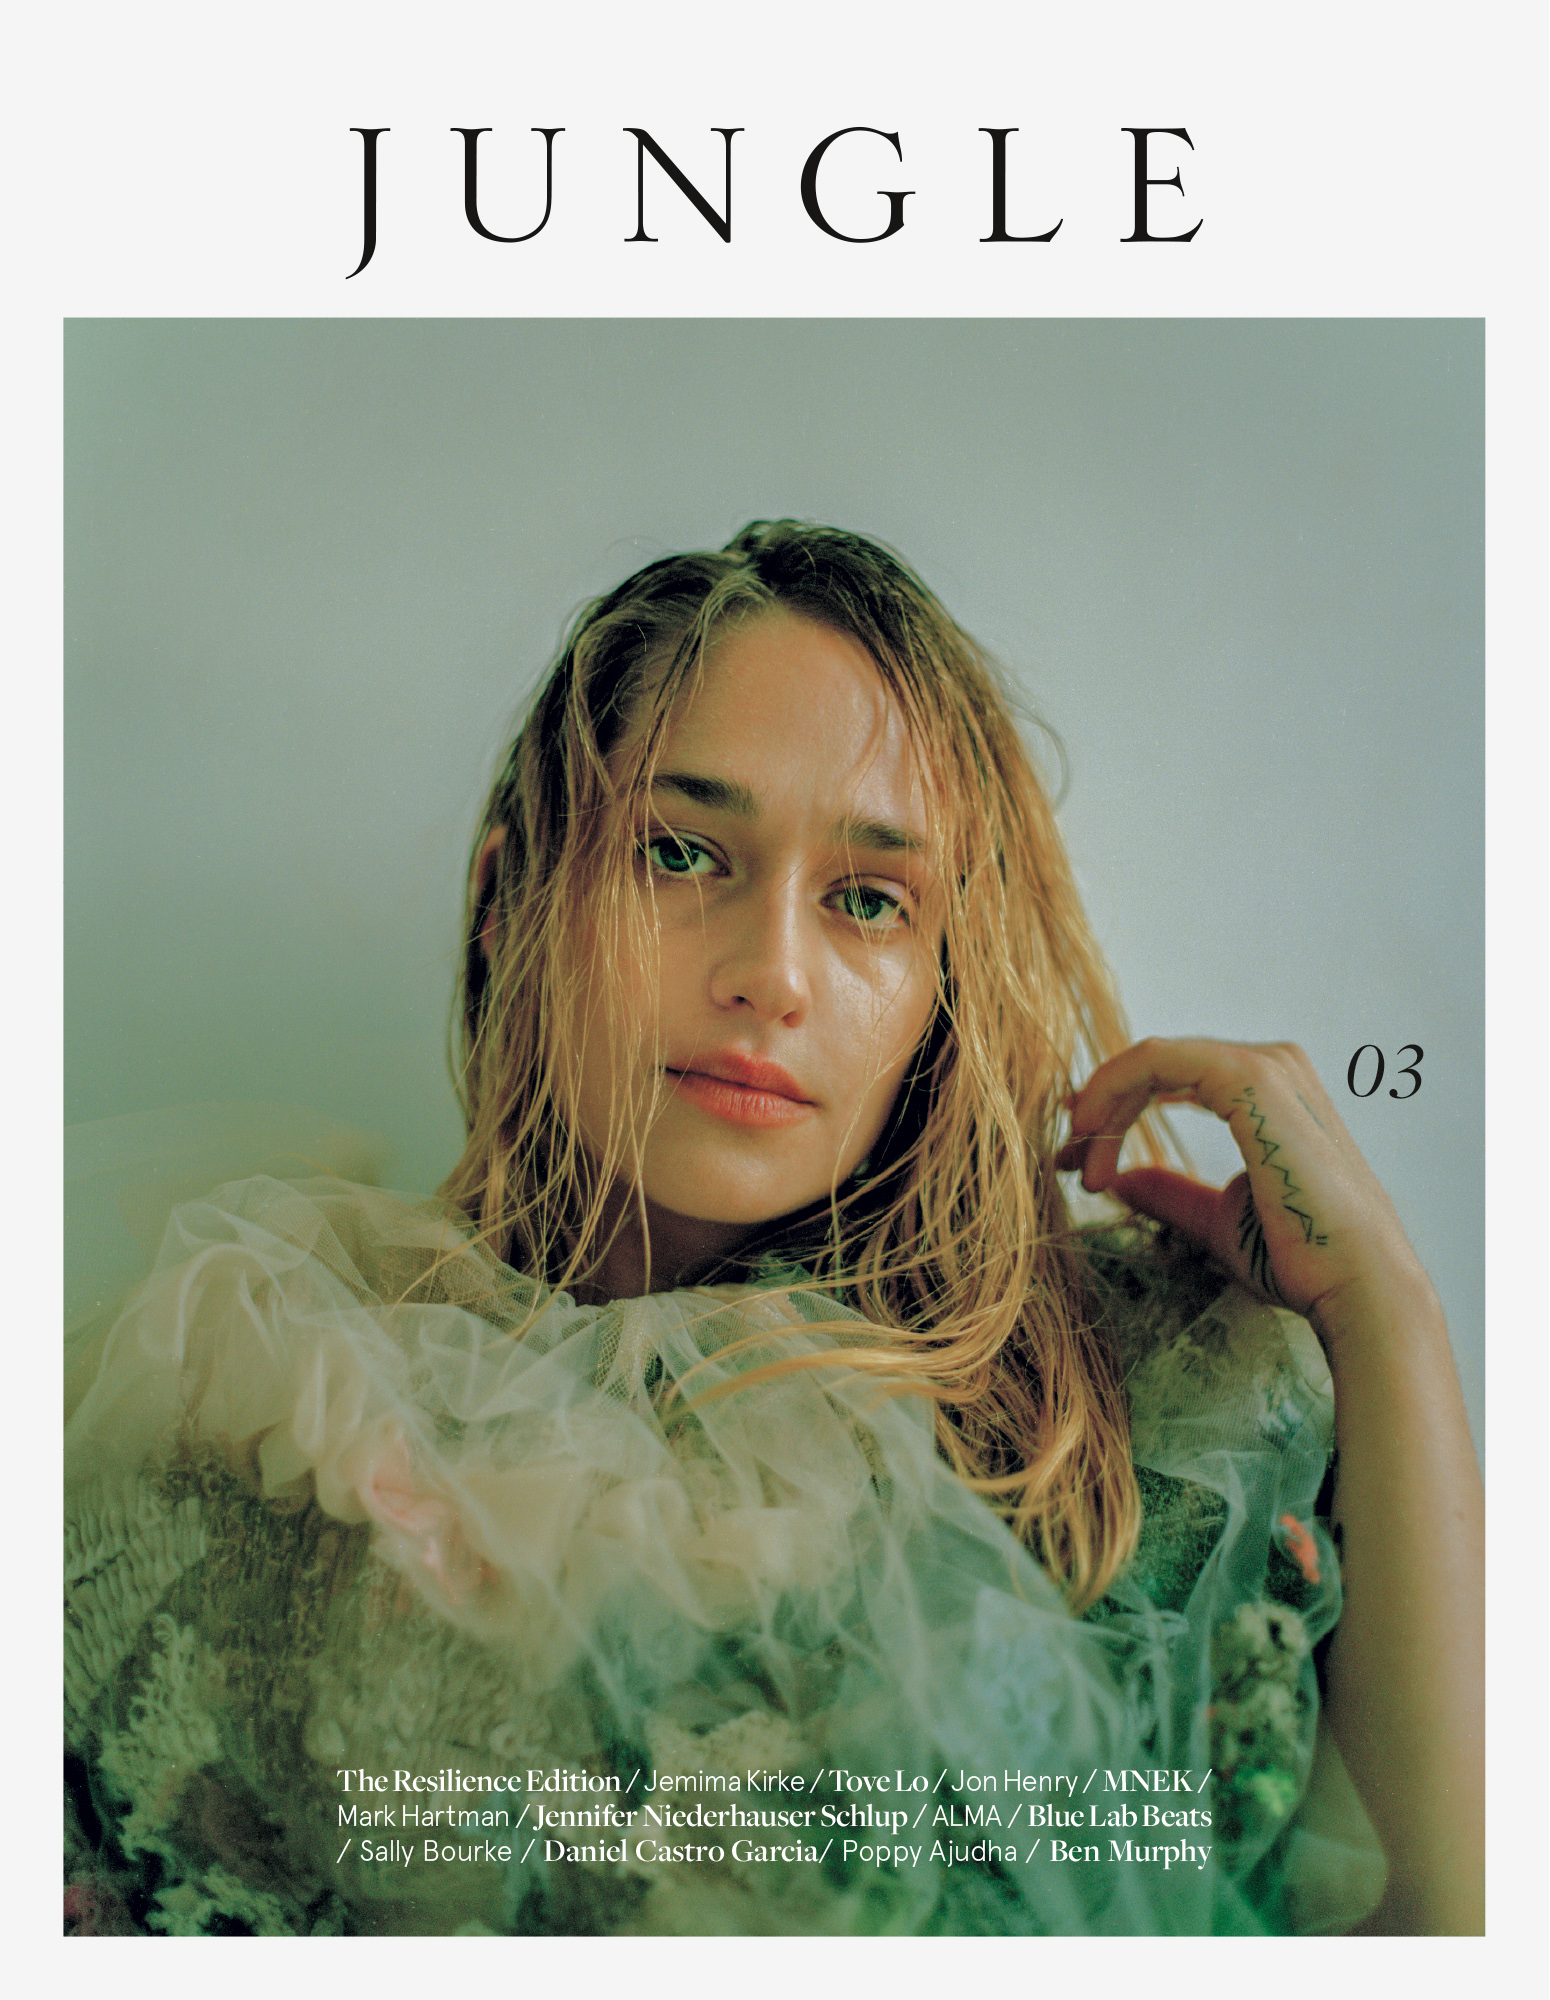 Jungle-Edition-03-Jemima Kirke